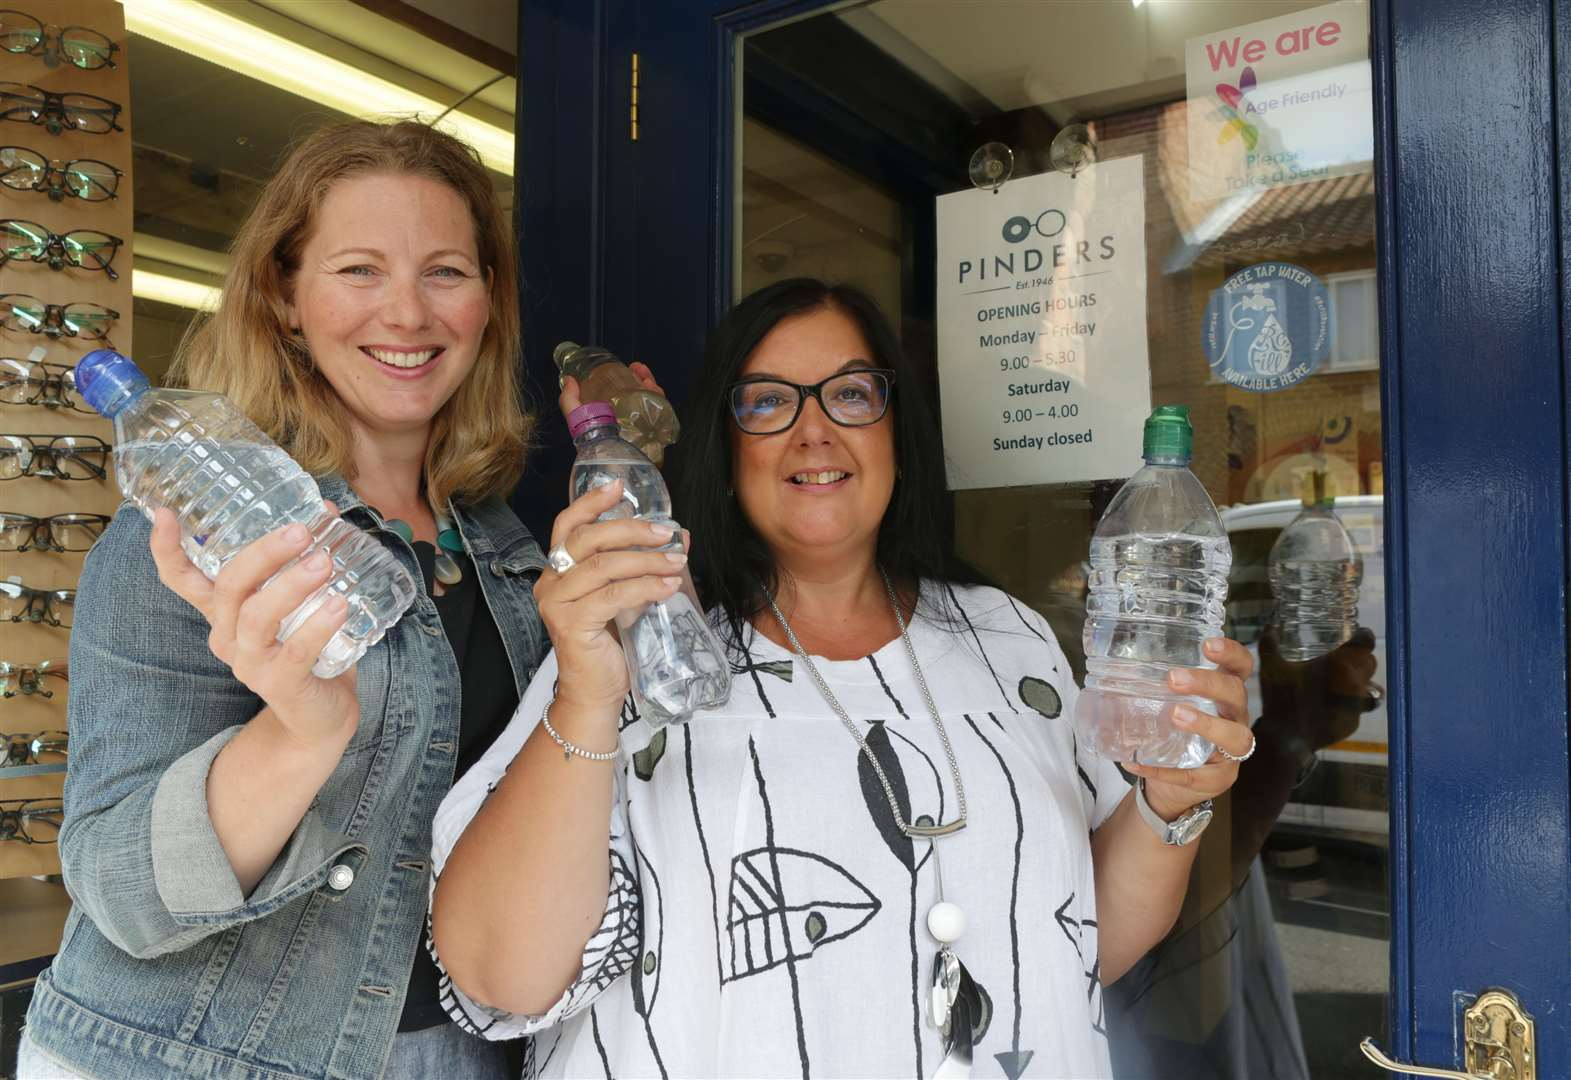 A thirst for change ­— 'There is no need to buy bottled water'